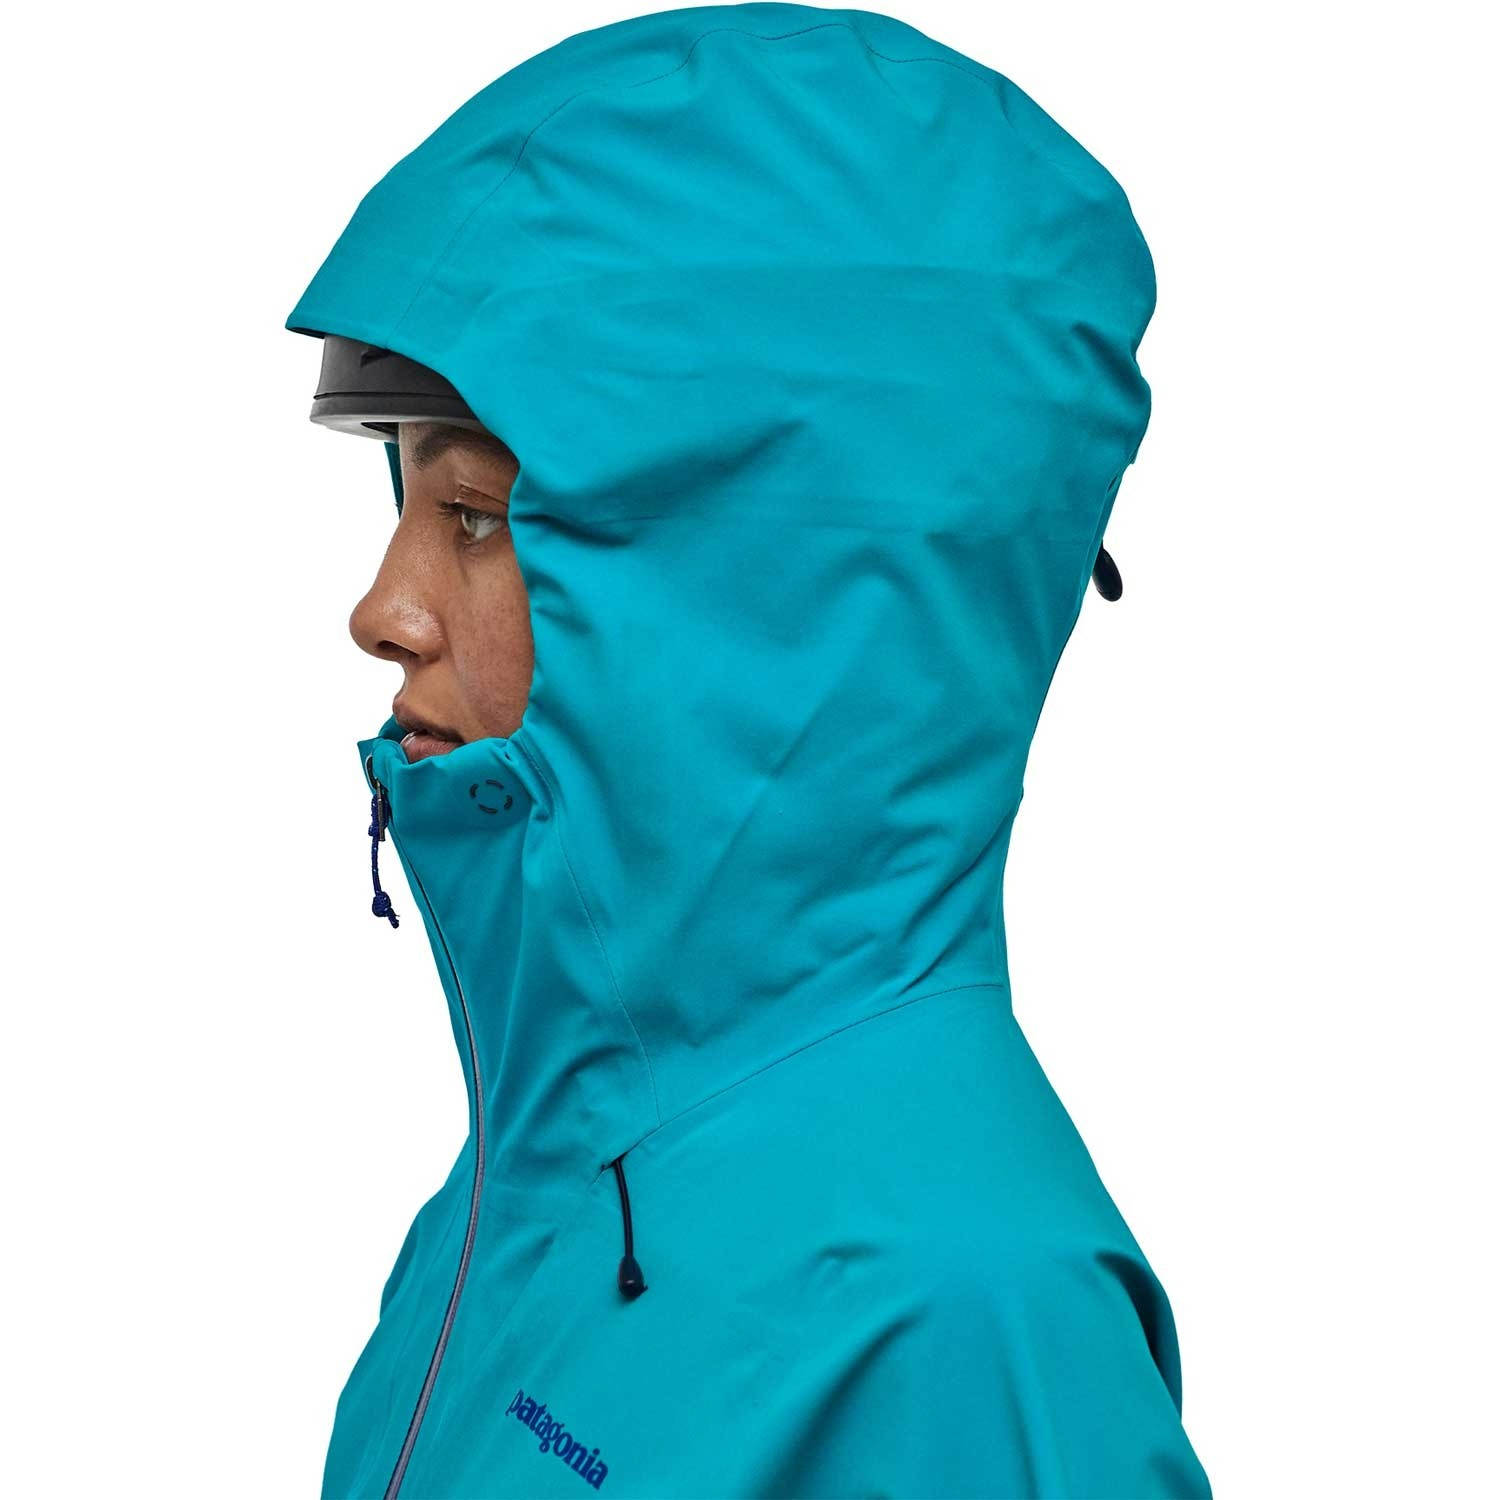 Patagonia Galvanized Waterproof Jacket - Women's - Curaçao Blue